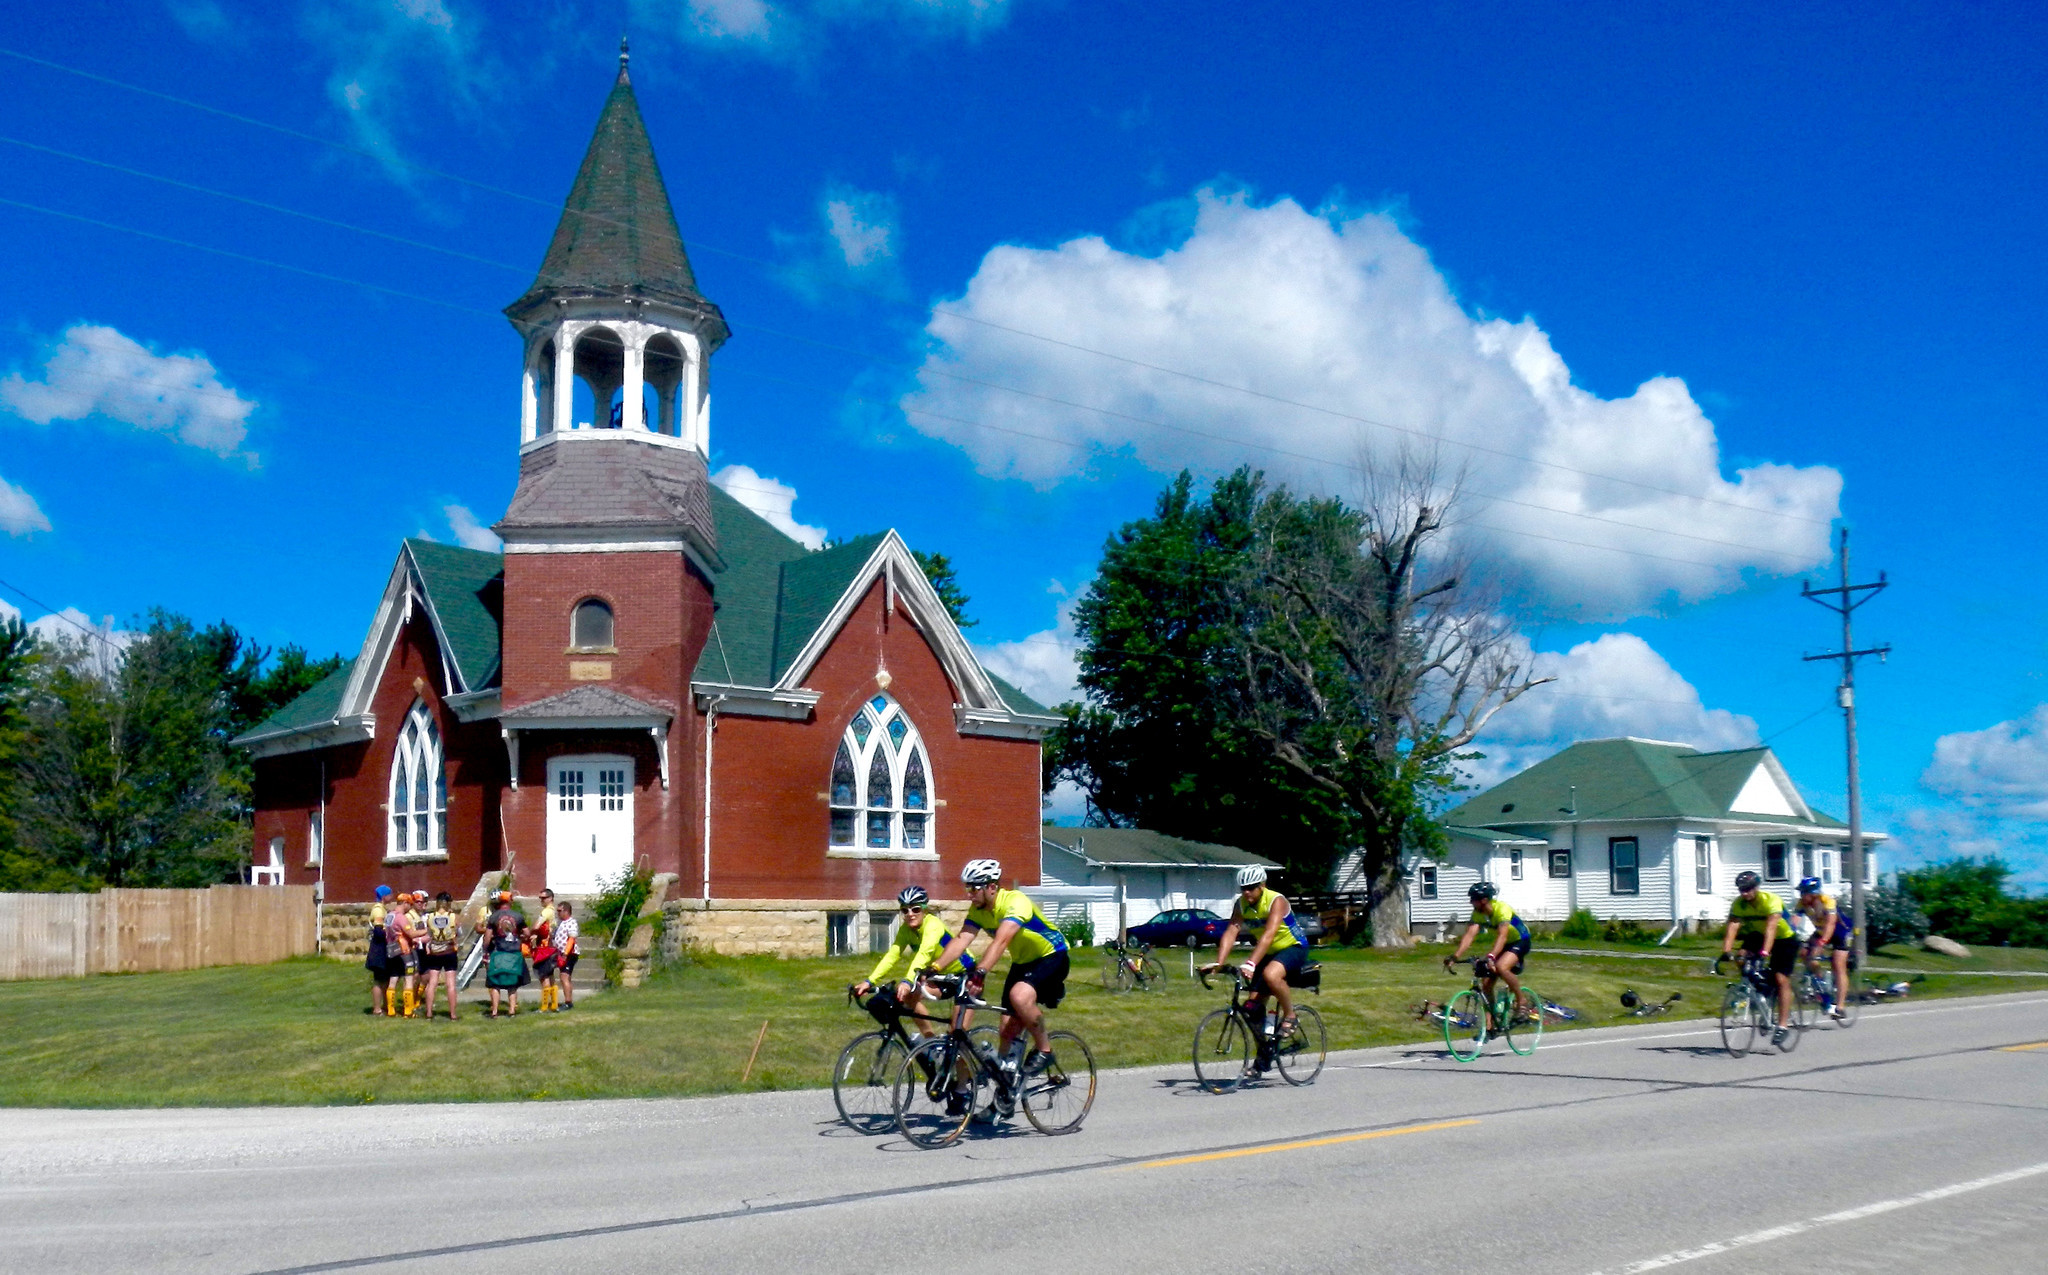 Cyclists on an Iowa RAGBRAI tour riding by a church in a small town in eastern Iowa. Some of the riders have stopped to check out the church.